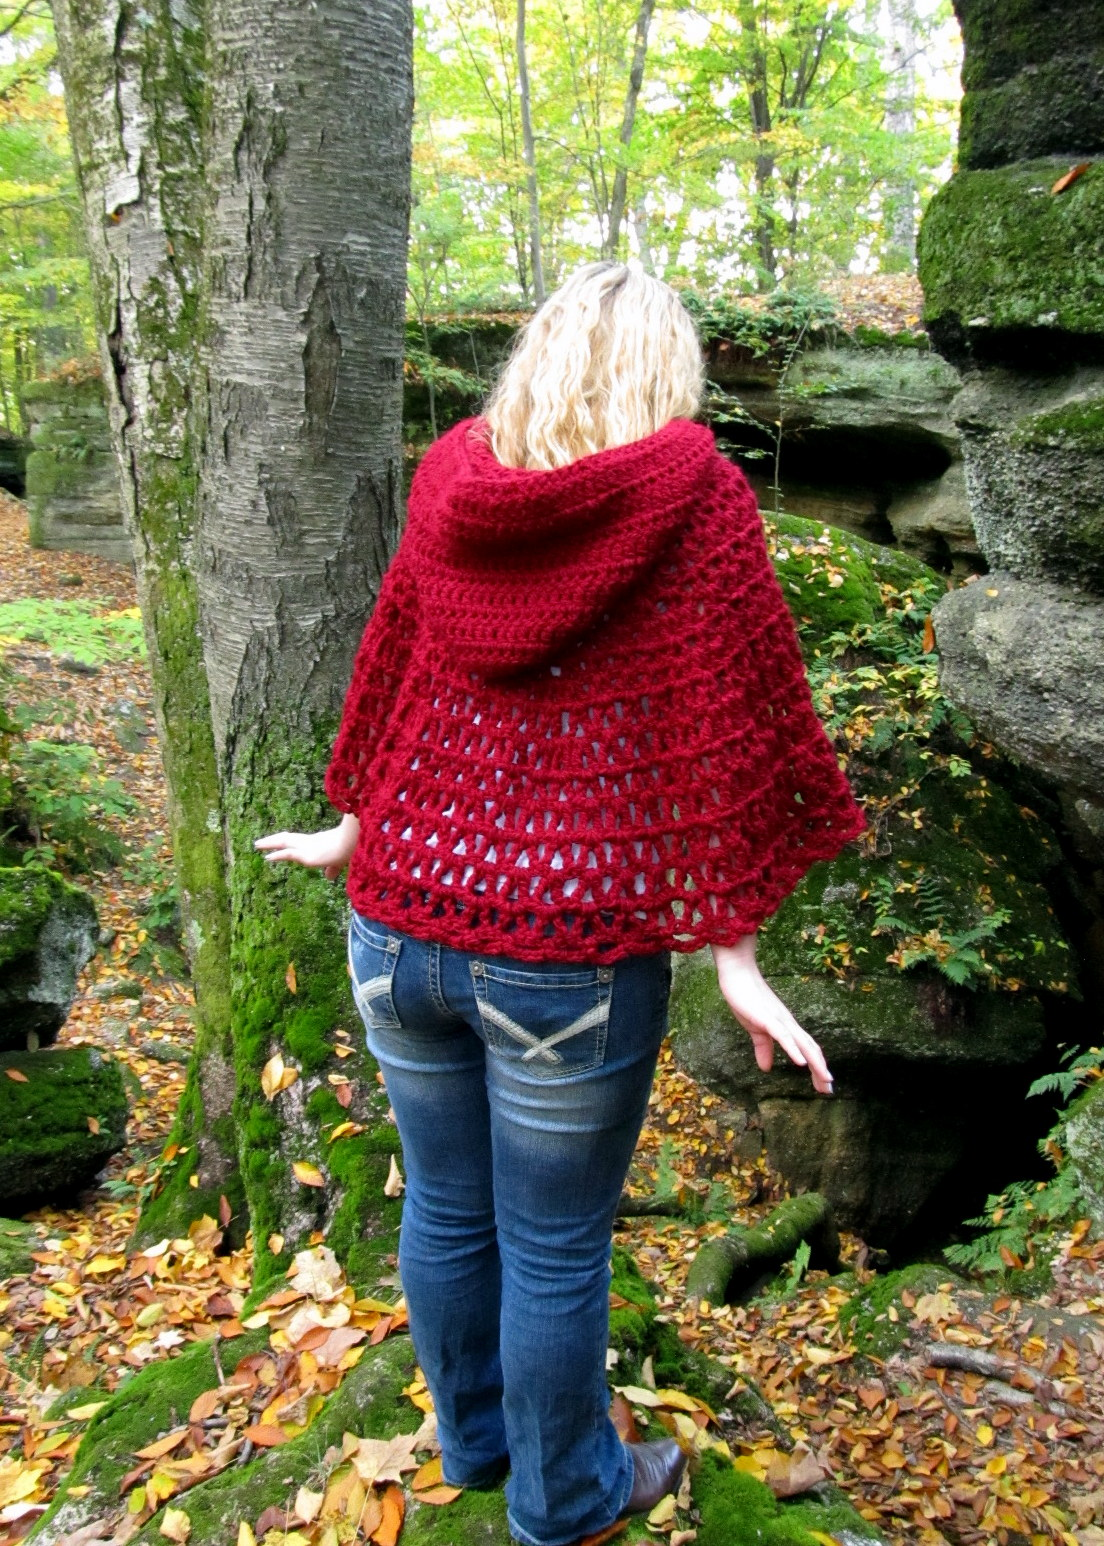 LazyTcrochet: Wildwood Capelet - New Crochet pattern and tutorial